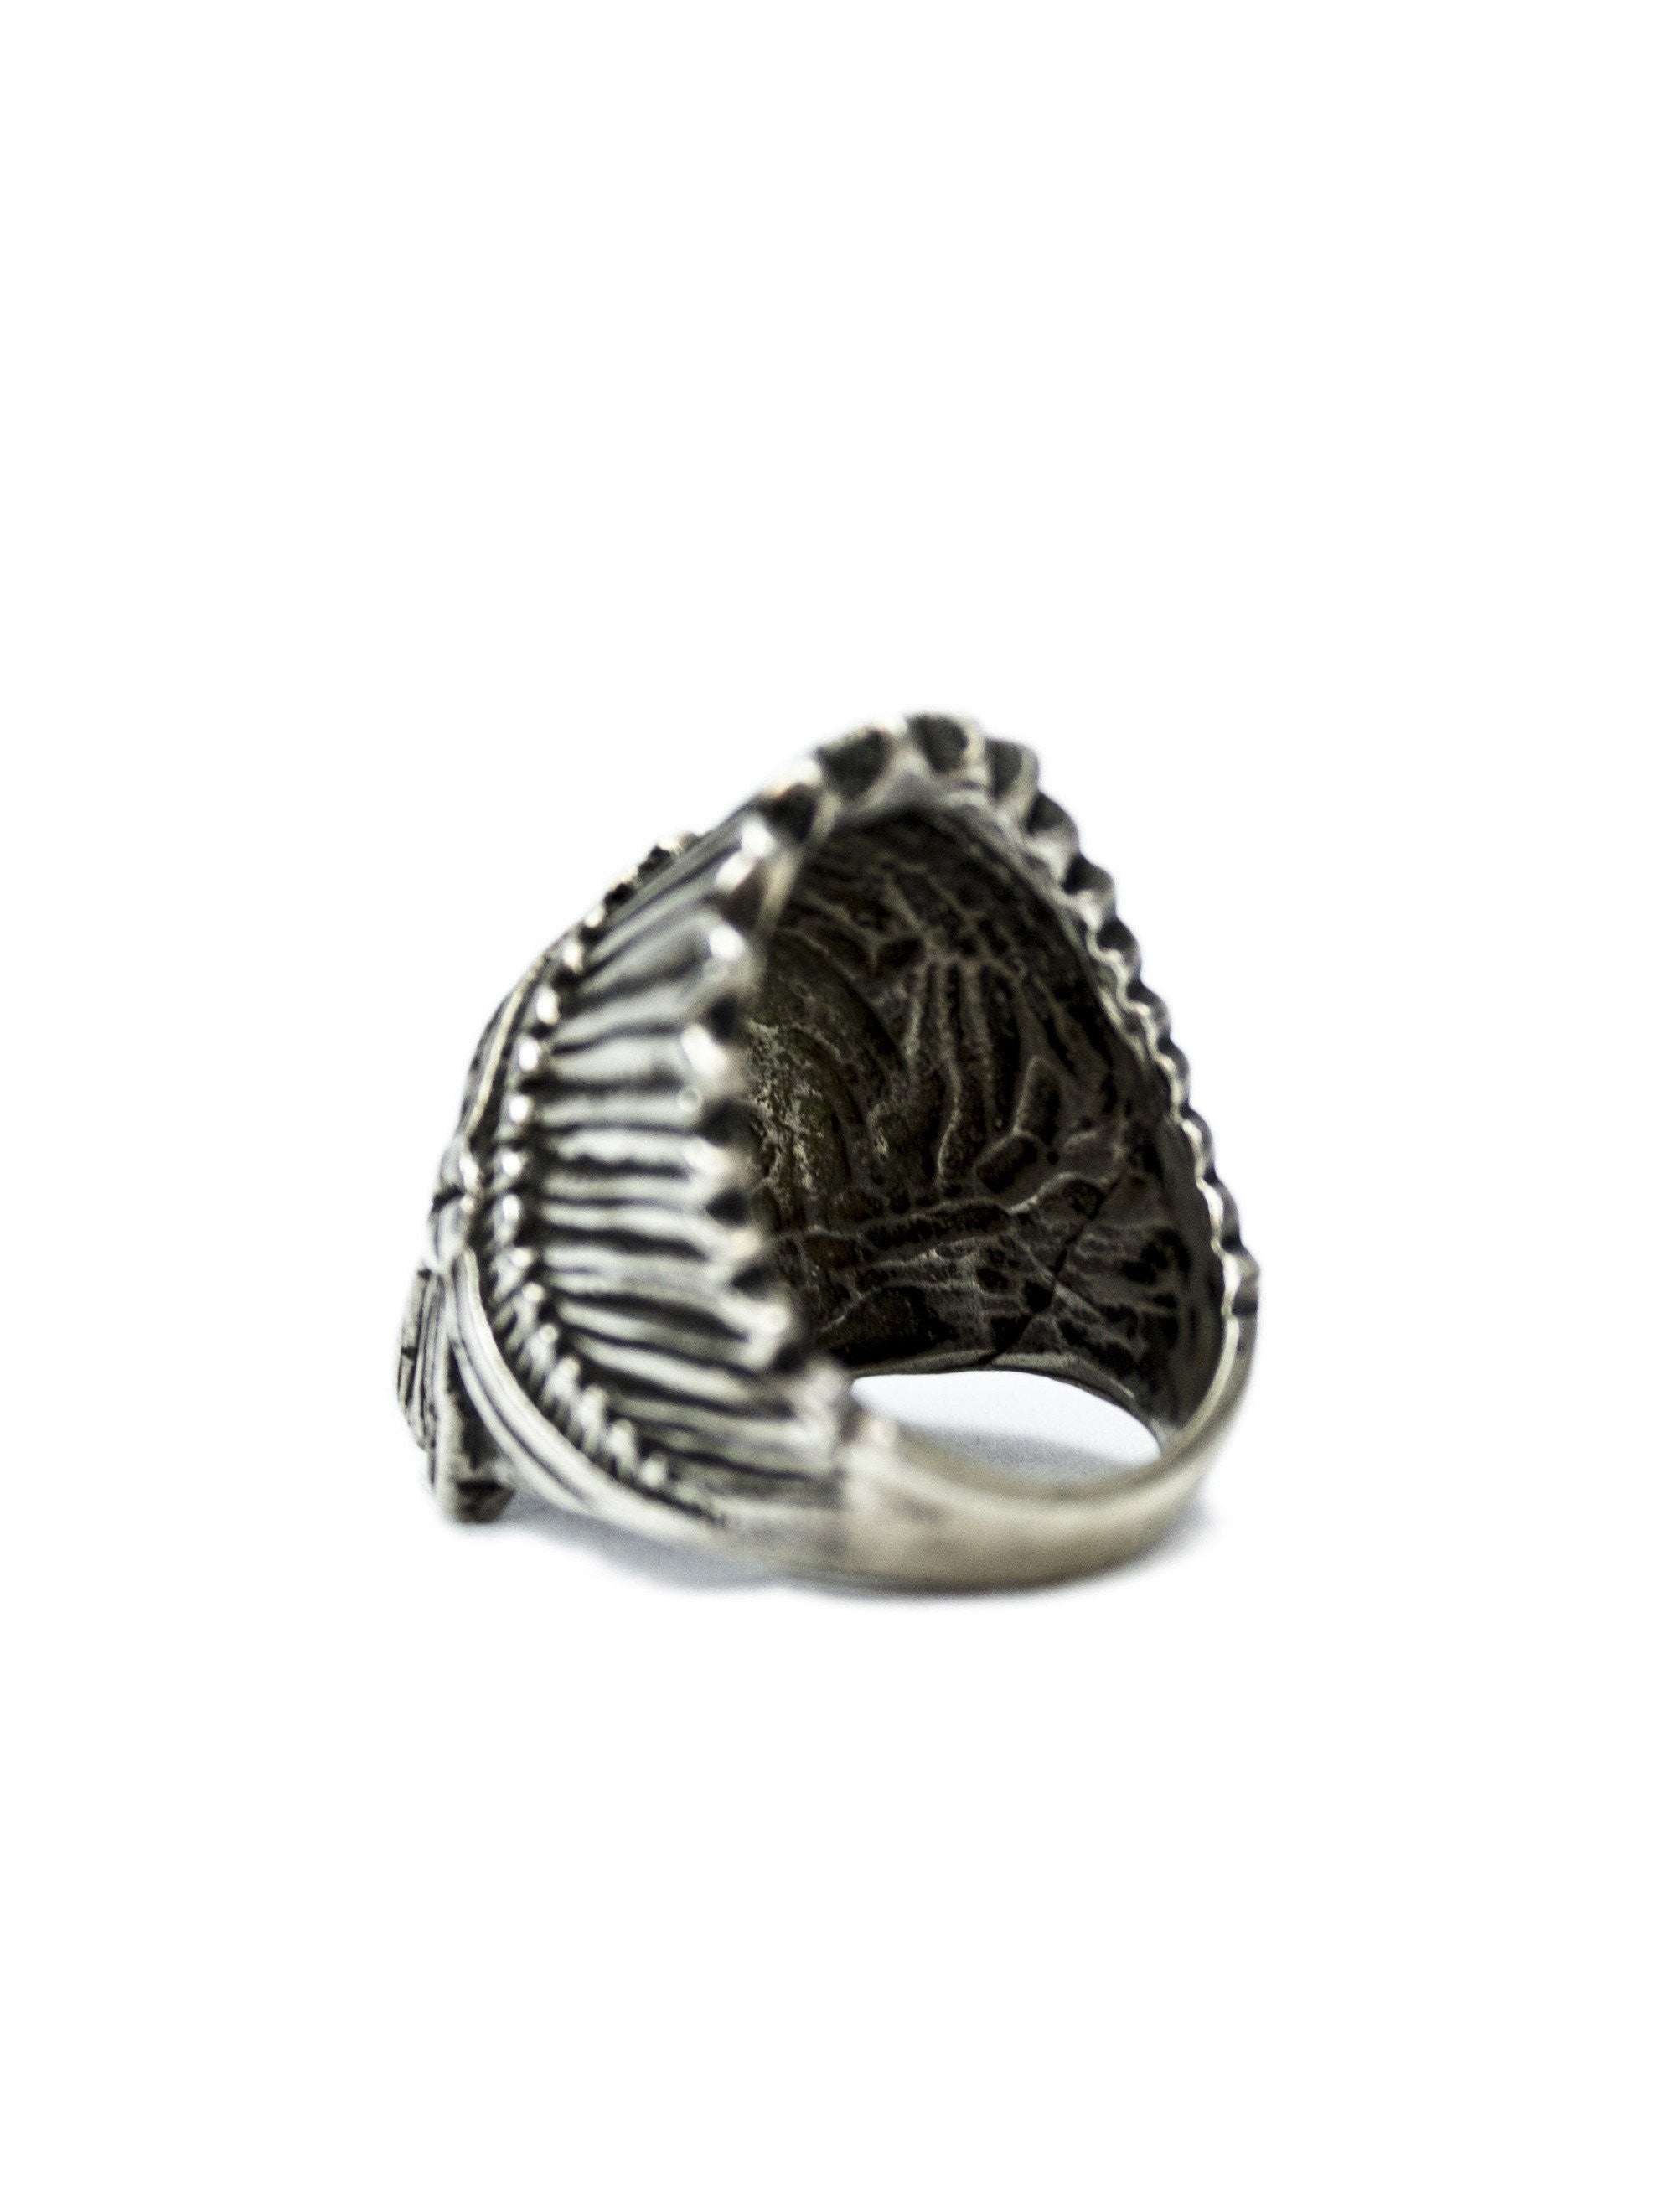 Vintage Sterling Silver Indian Chief Ring